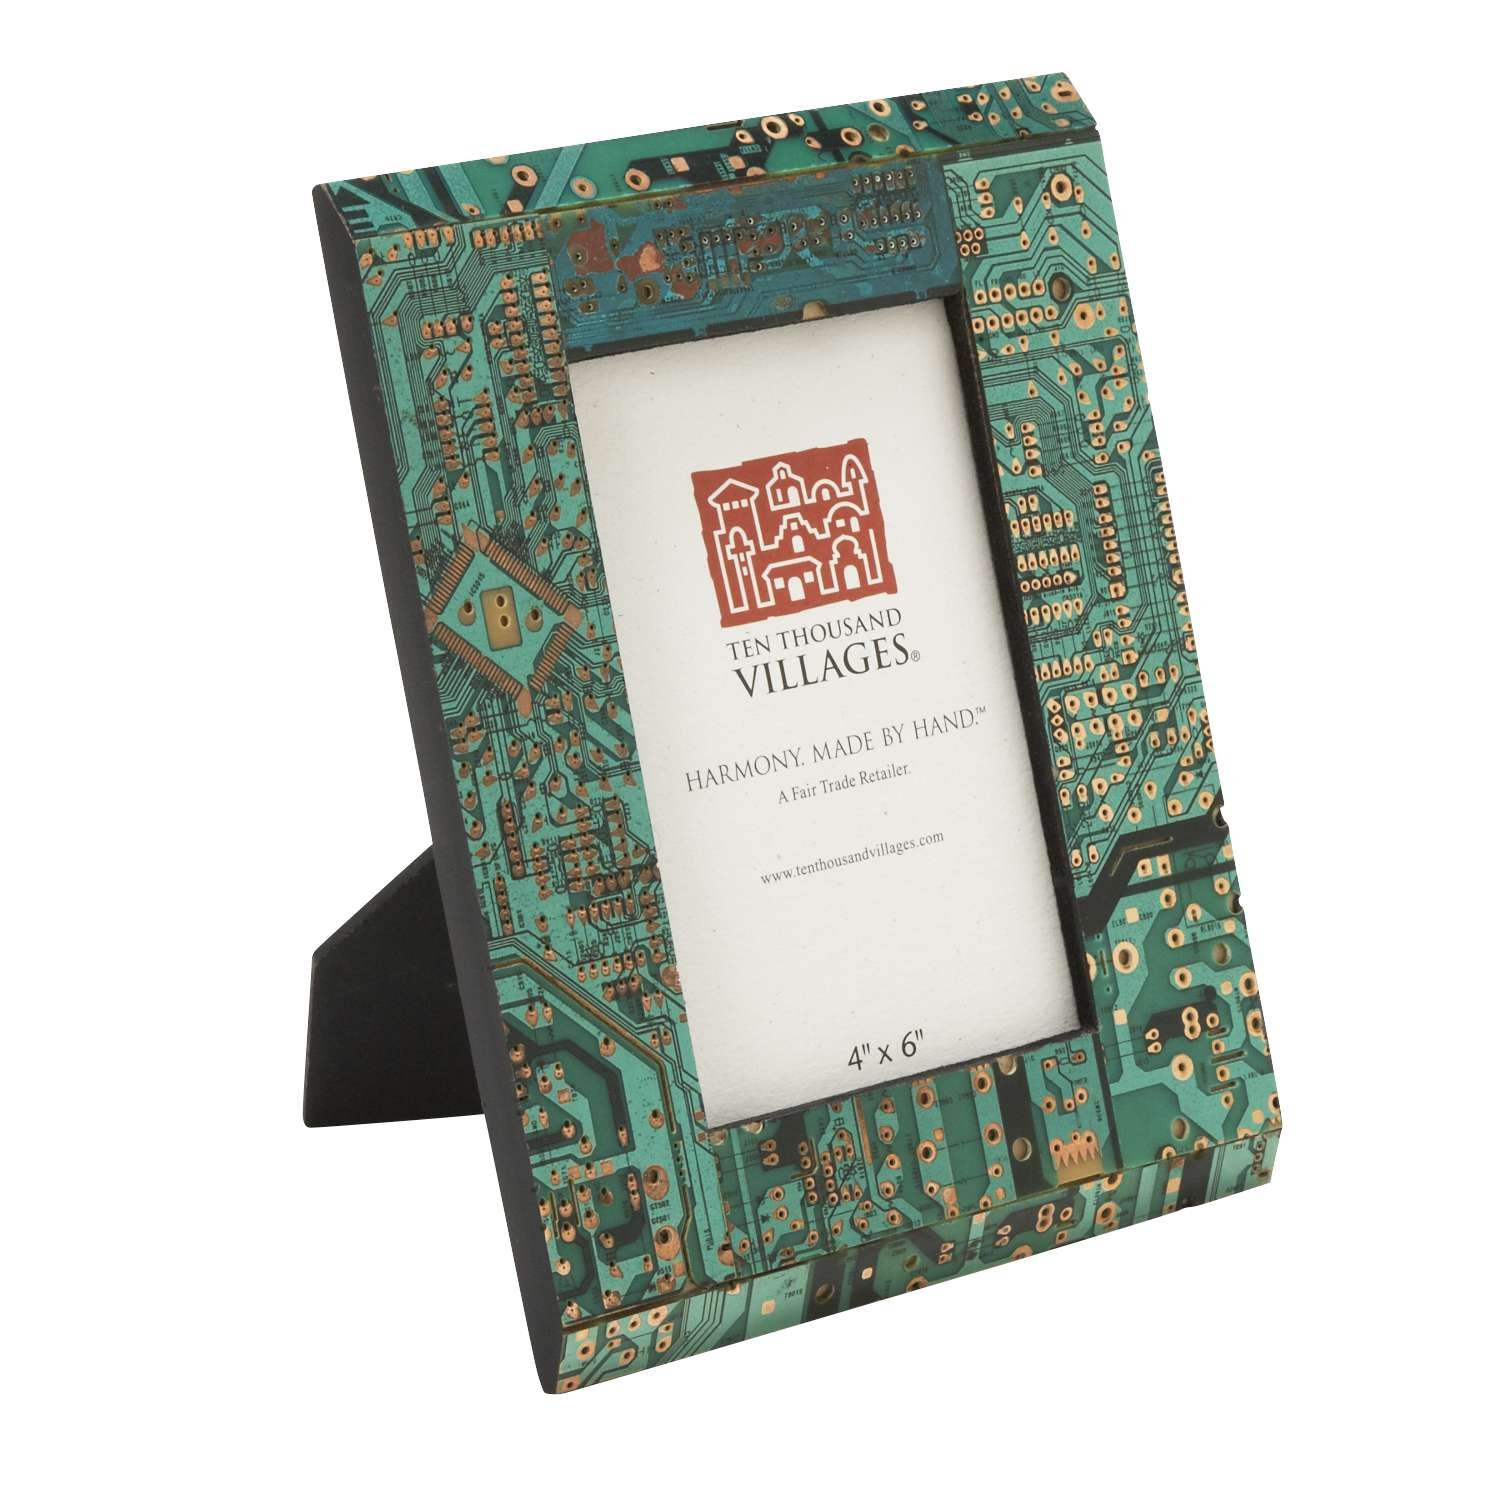 Ten Thousand Villages Repurposed Computer Parts Picture Frame for 4x6 Photo Circuit Board Photo Frame